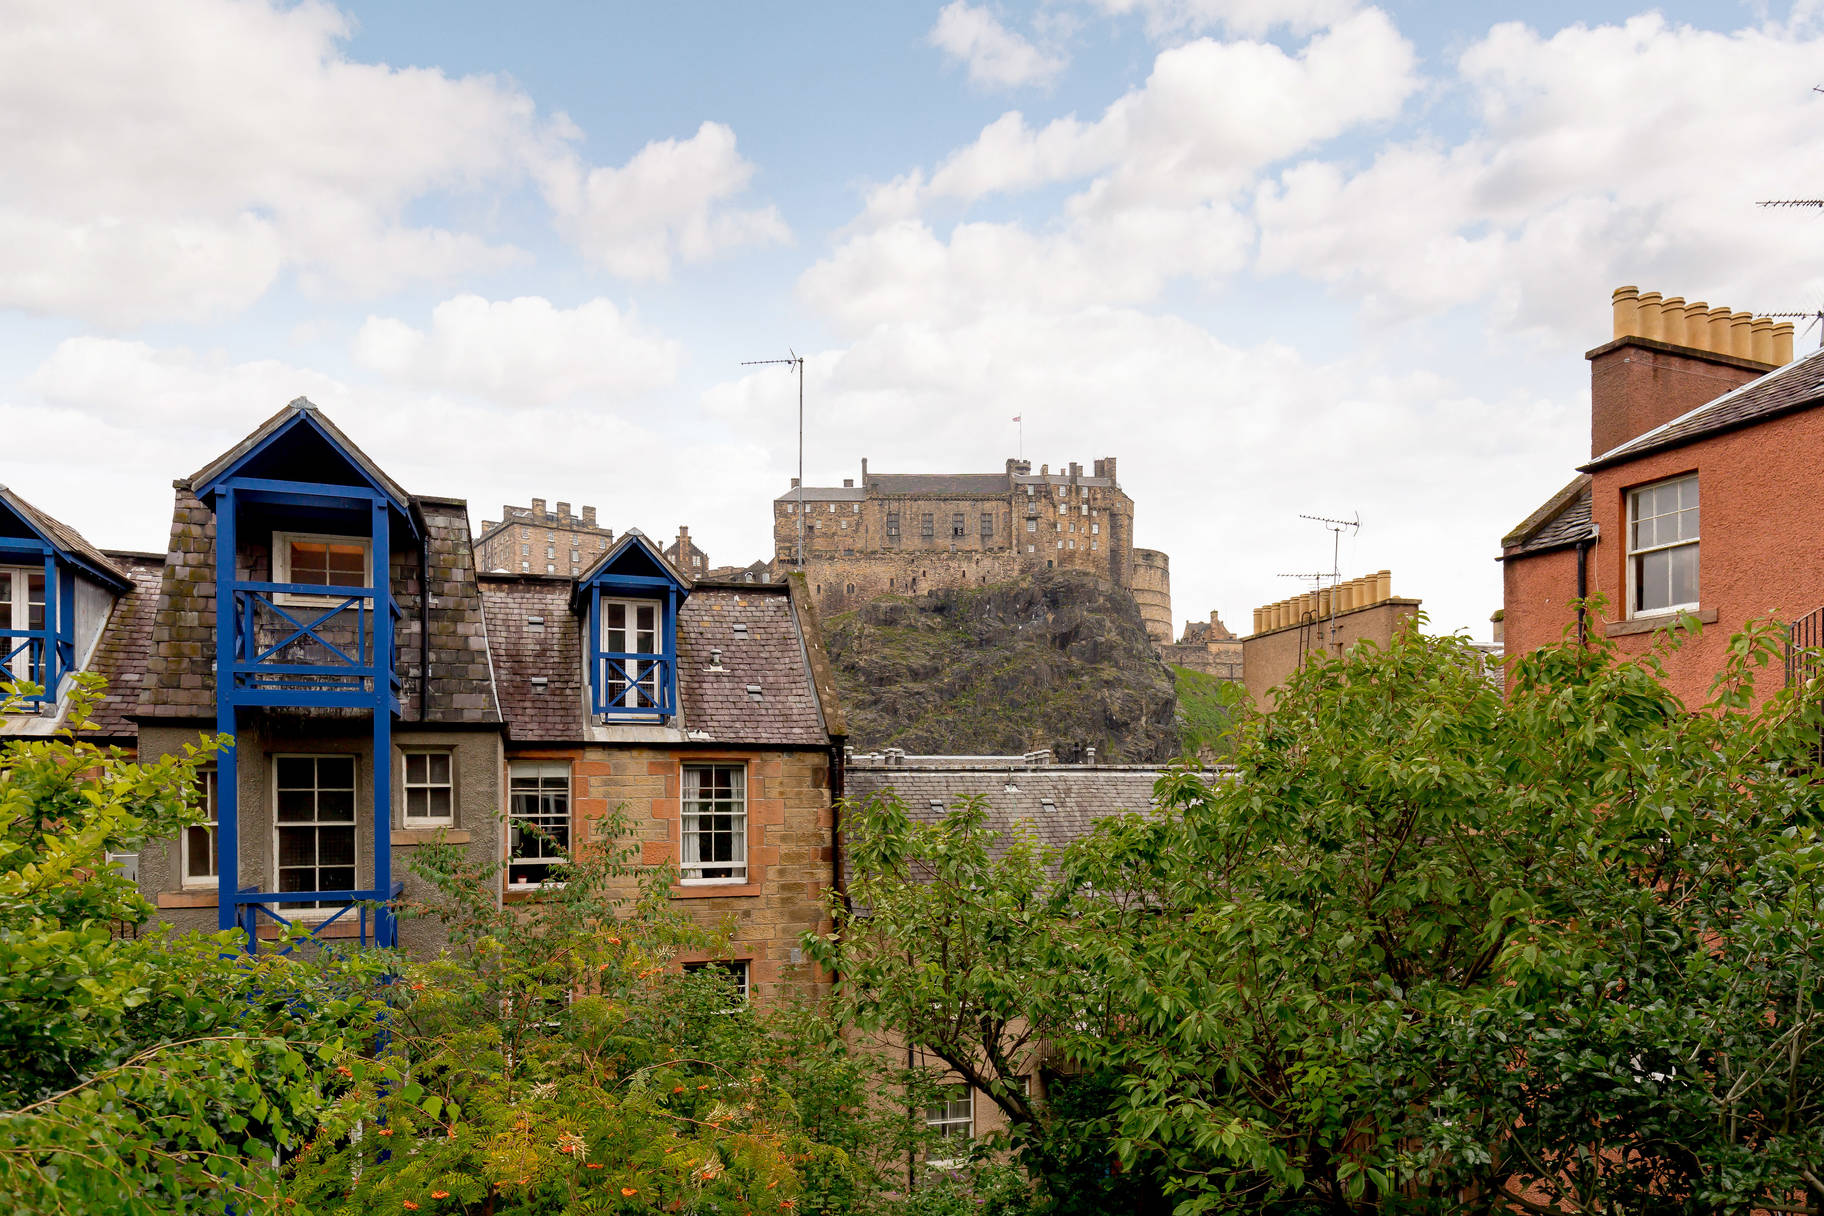 Property PR photography, Signal house view of Edinburgh Castle, Simpson & Marwick.